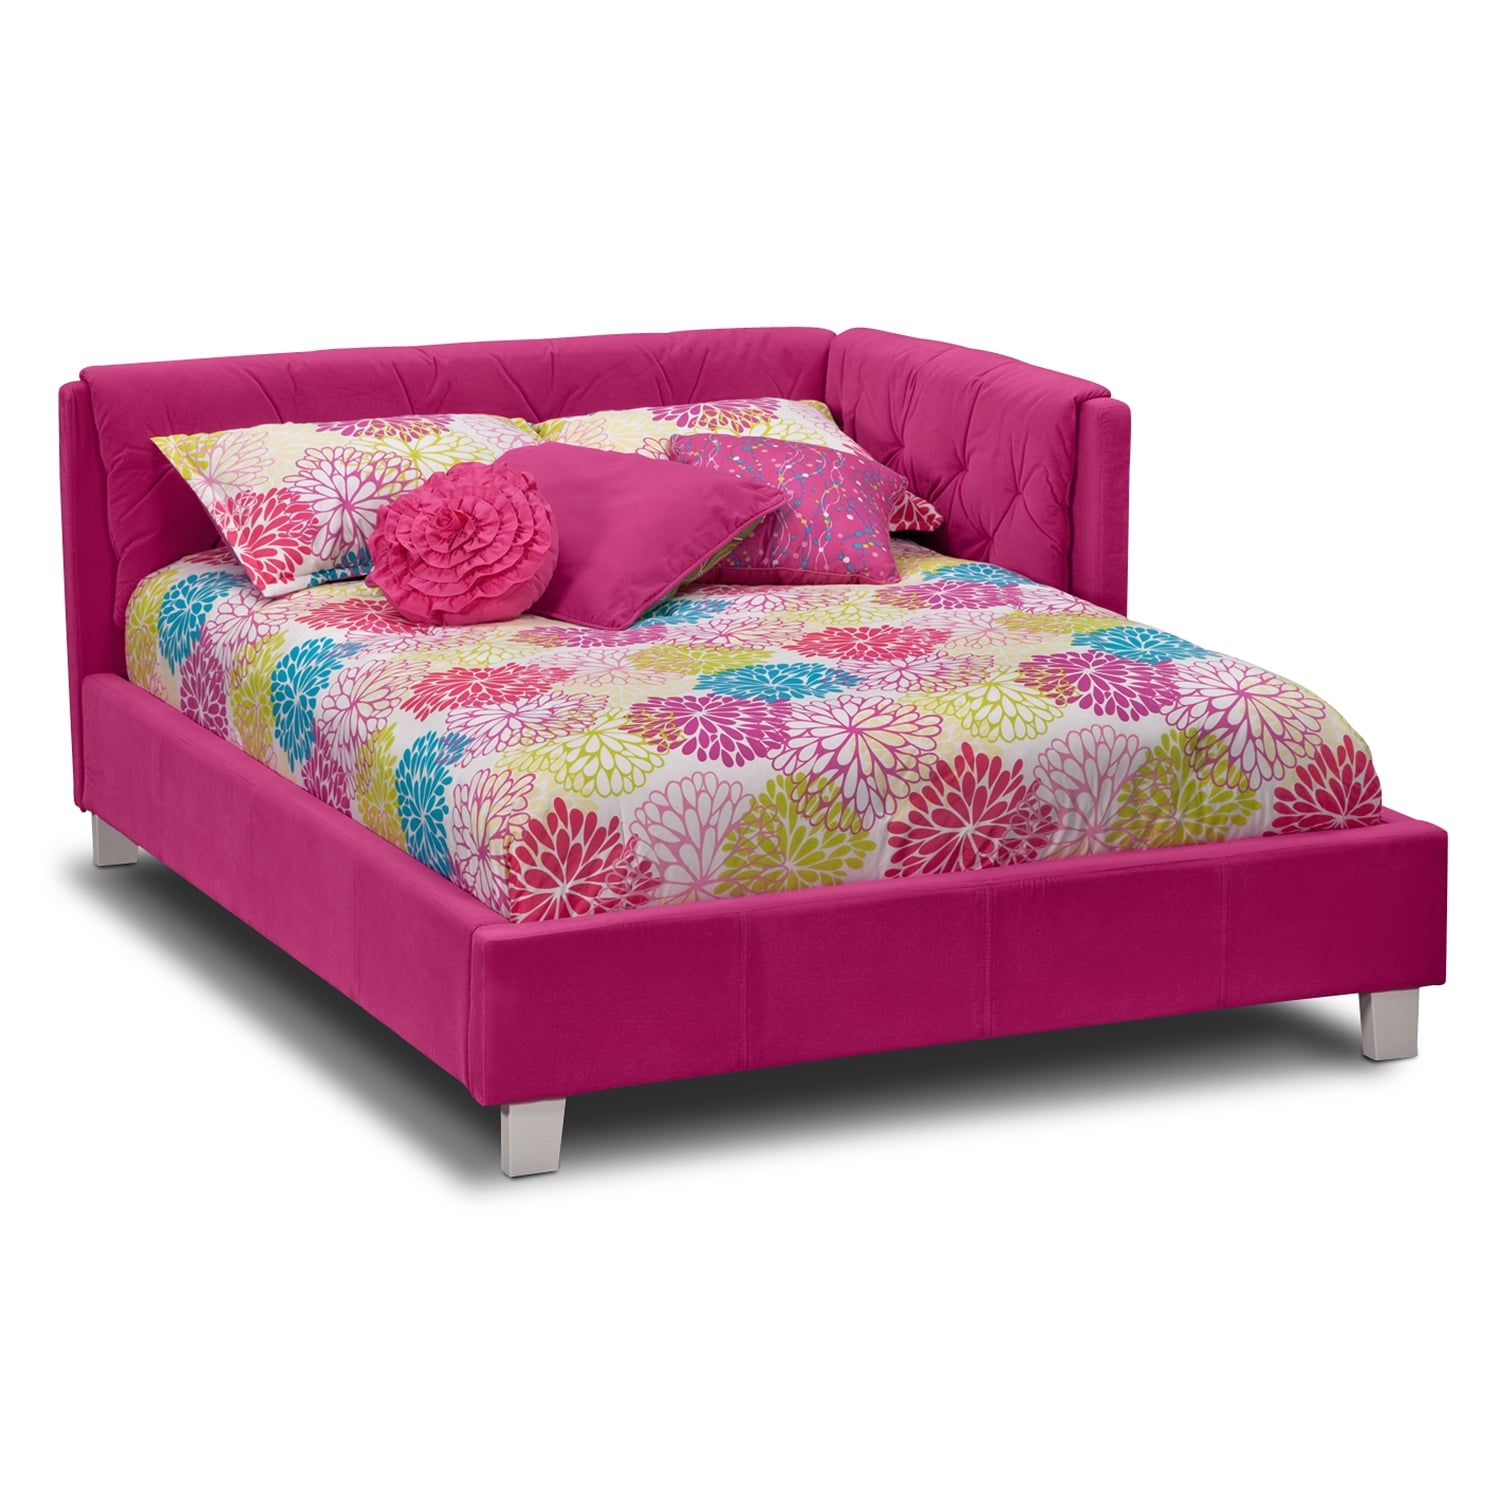 Taylor pink kids furniture full corner bed for Youth furniture